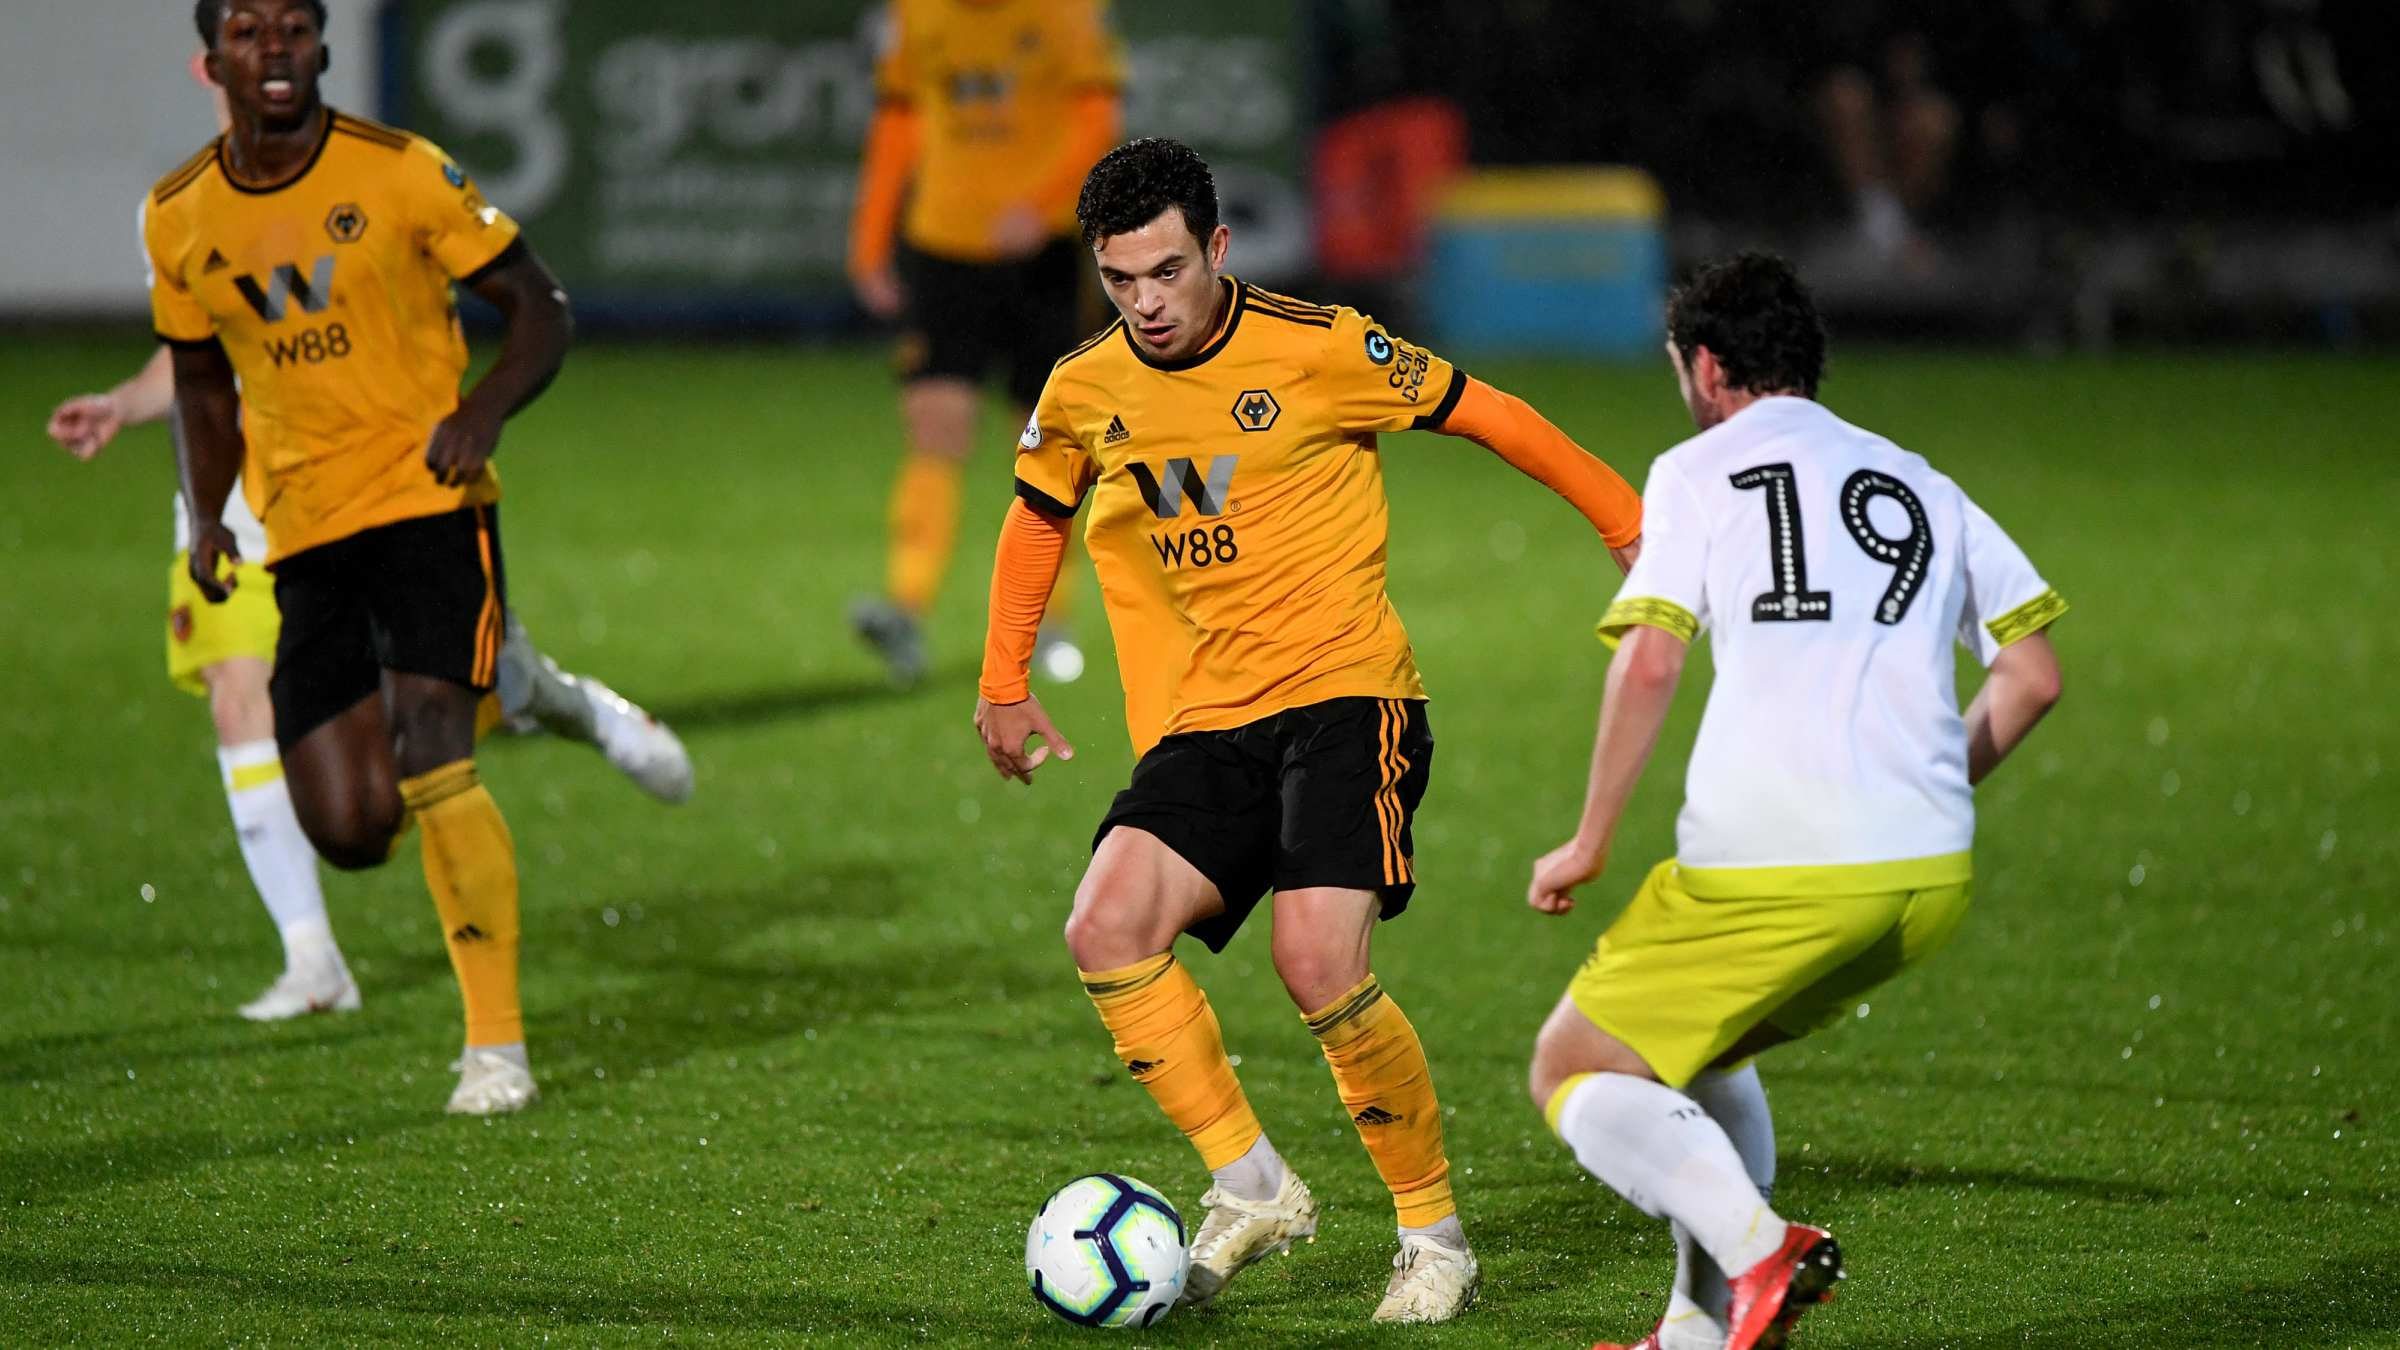 wolves vs southampton - photo #3